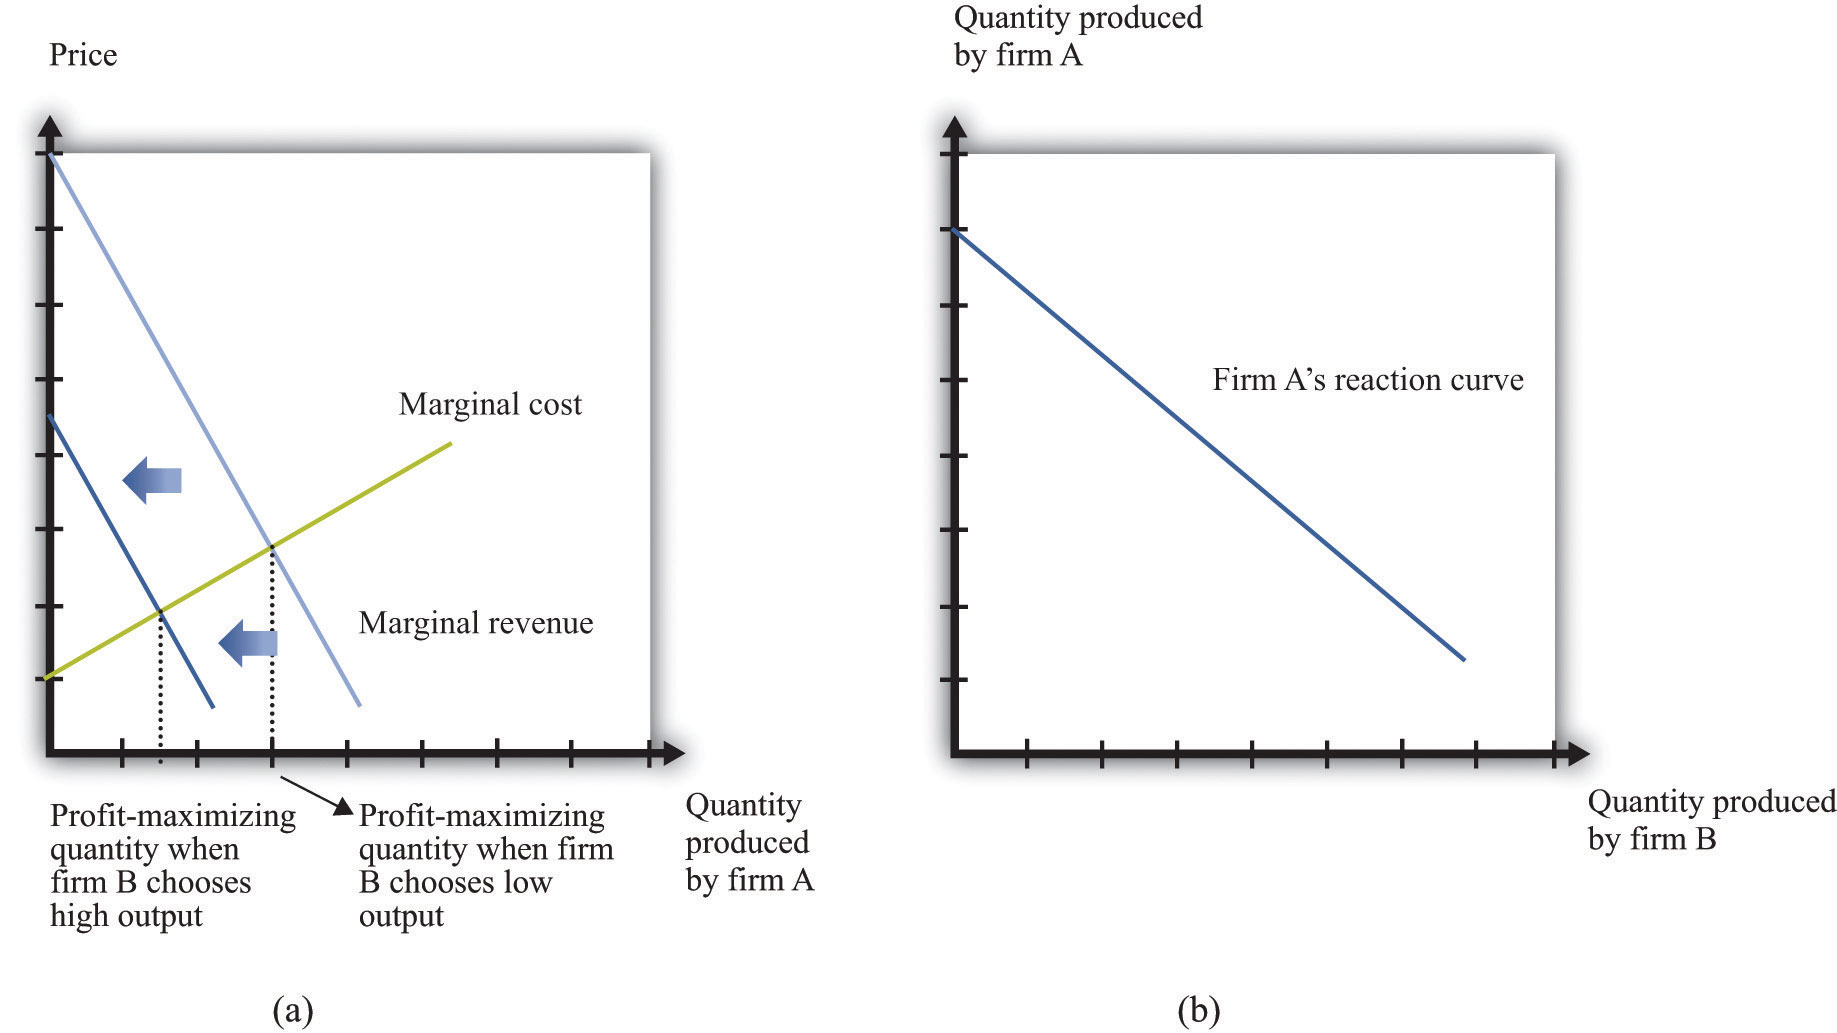 how to find marginal revenue curve from demand curve